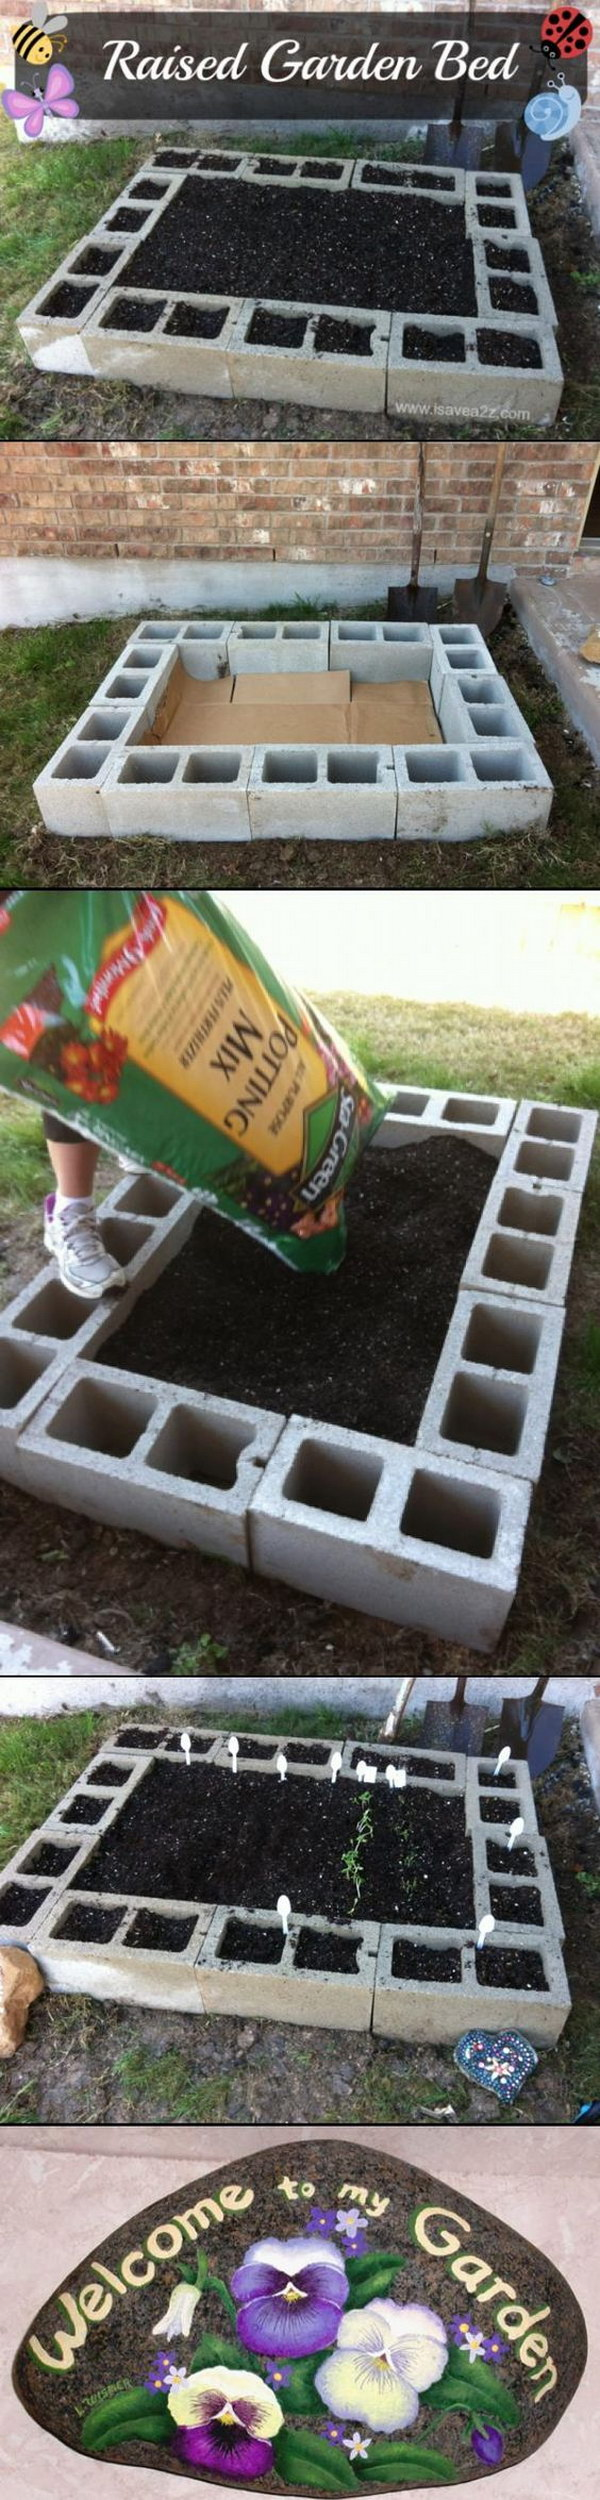 5 garden bed planter diy ideas - 20 Cool DIY Garden Bed and Planter Ideas